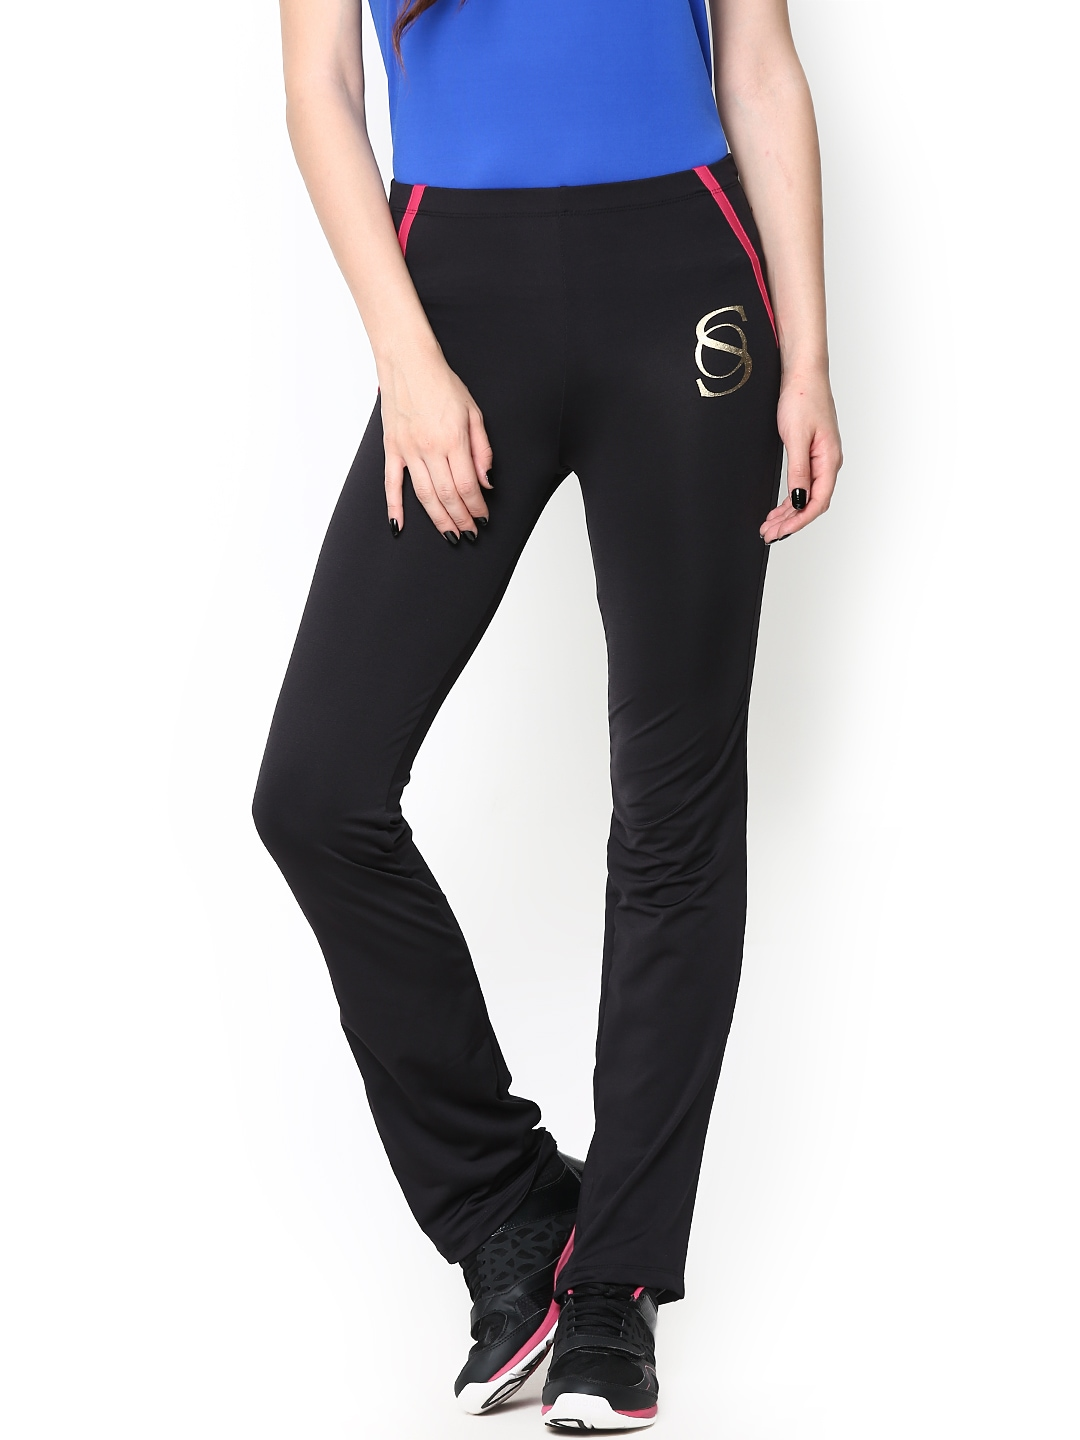 Elegant Home Clothing Women Clothing Track Pants Style Quotient Track Pants